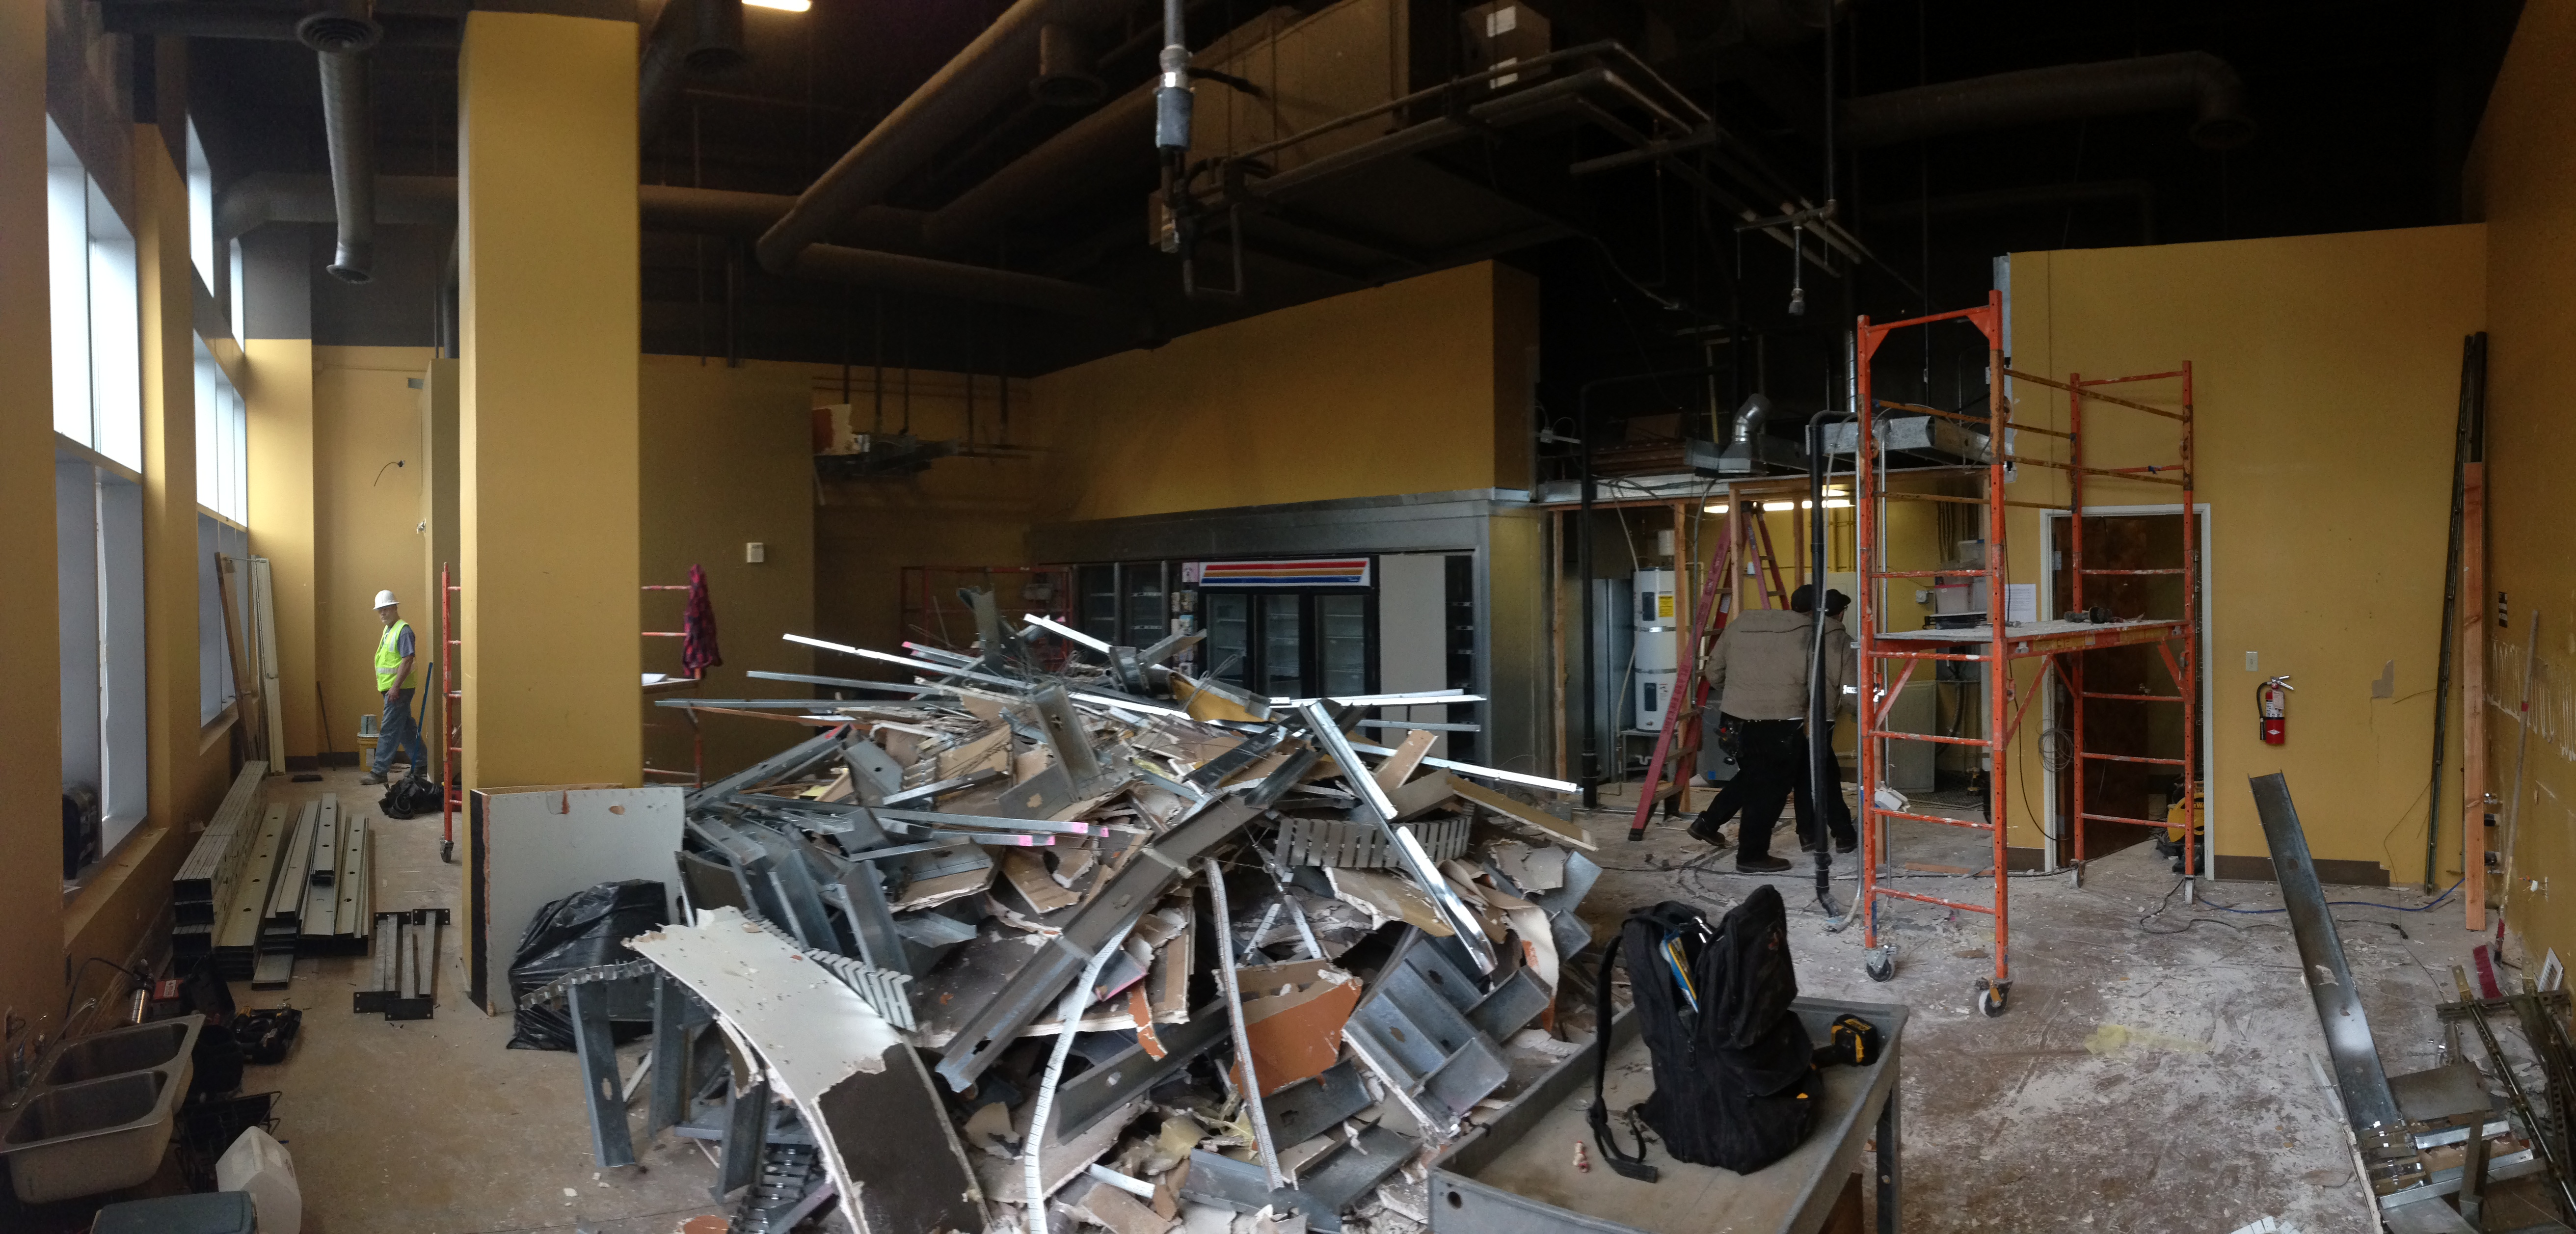 Debris from the former space layout covers the floor at The Civic Taproom and Bottle Shop.